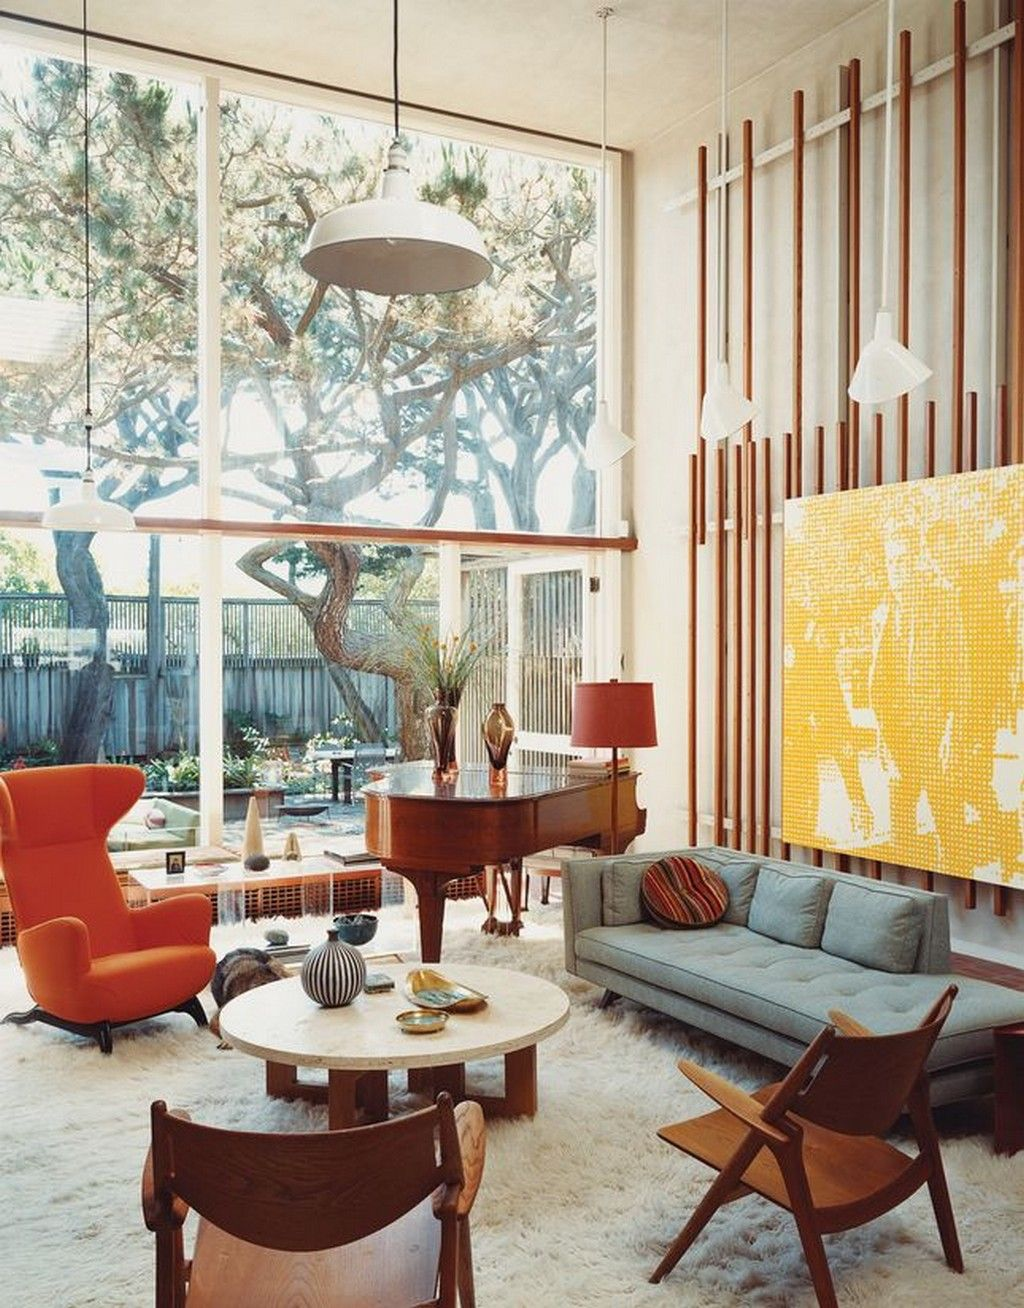 60s Retro Interior Design Images